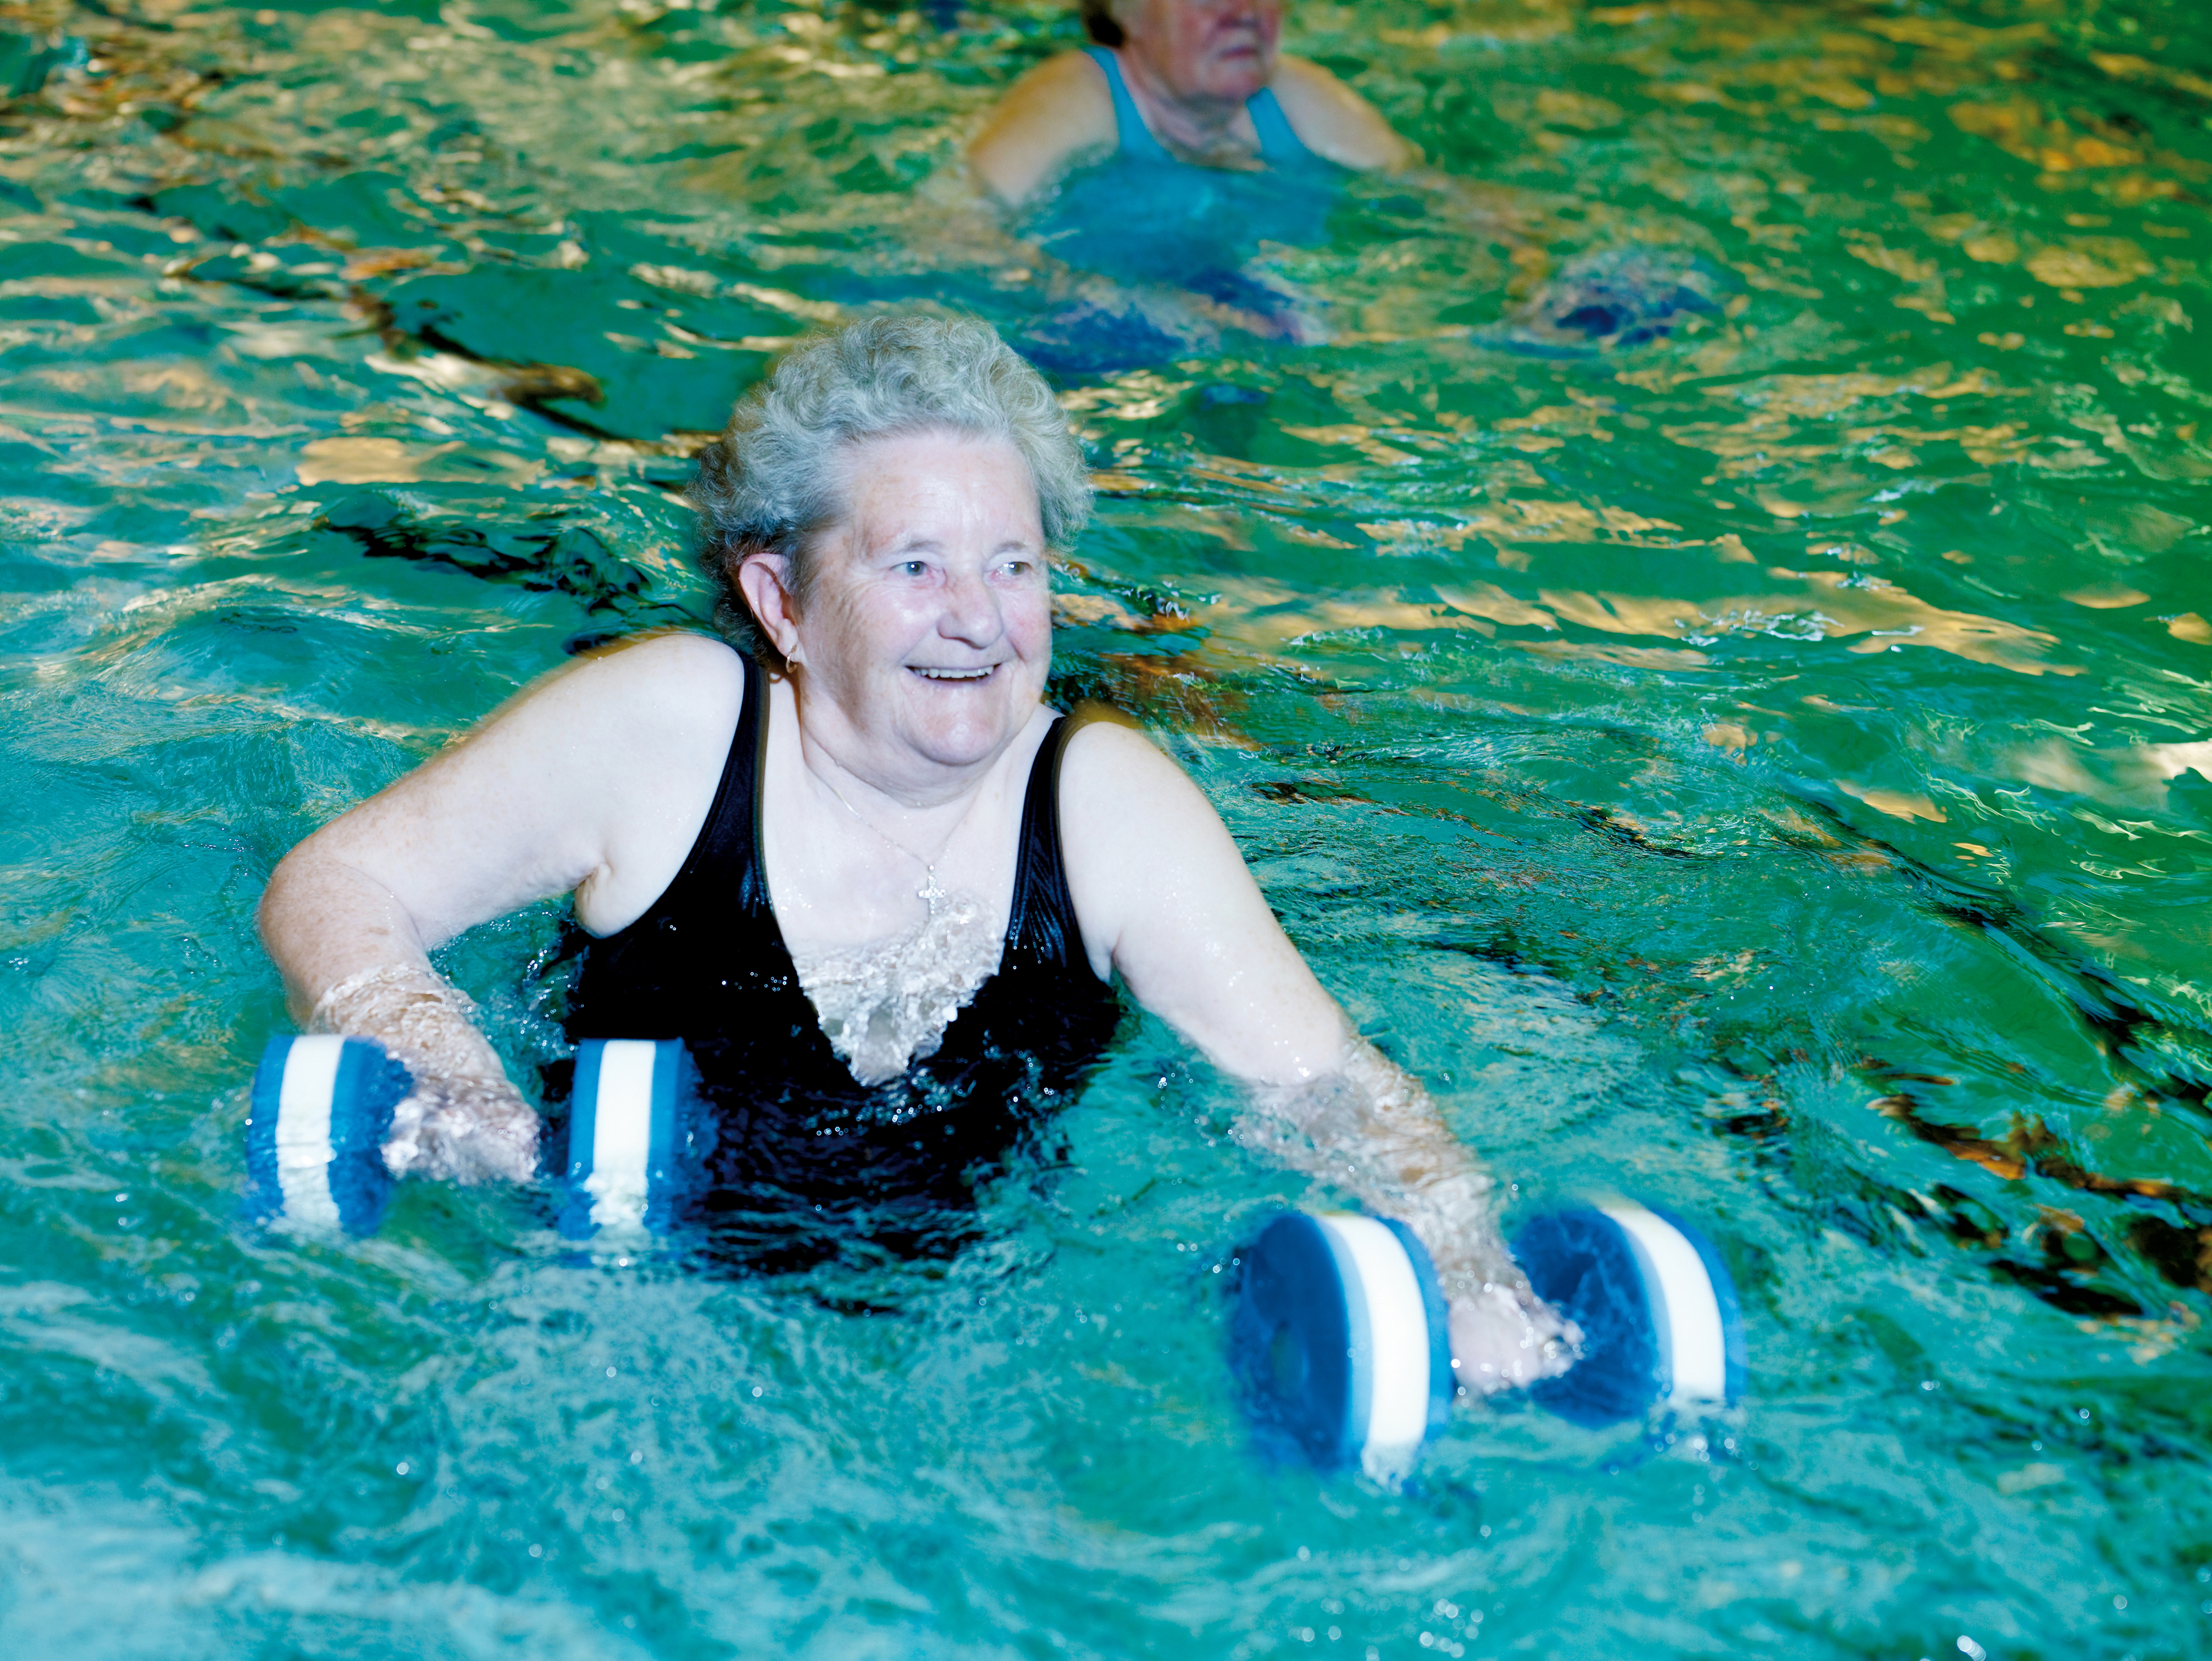 Doctors Should Prescribe Swimming to aid Illness and Medical Conditions for the British Public